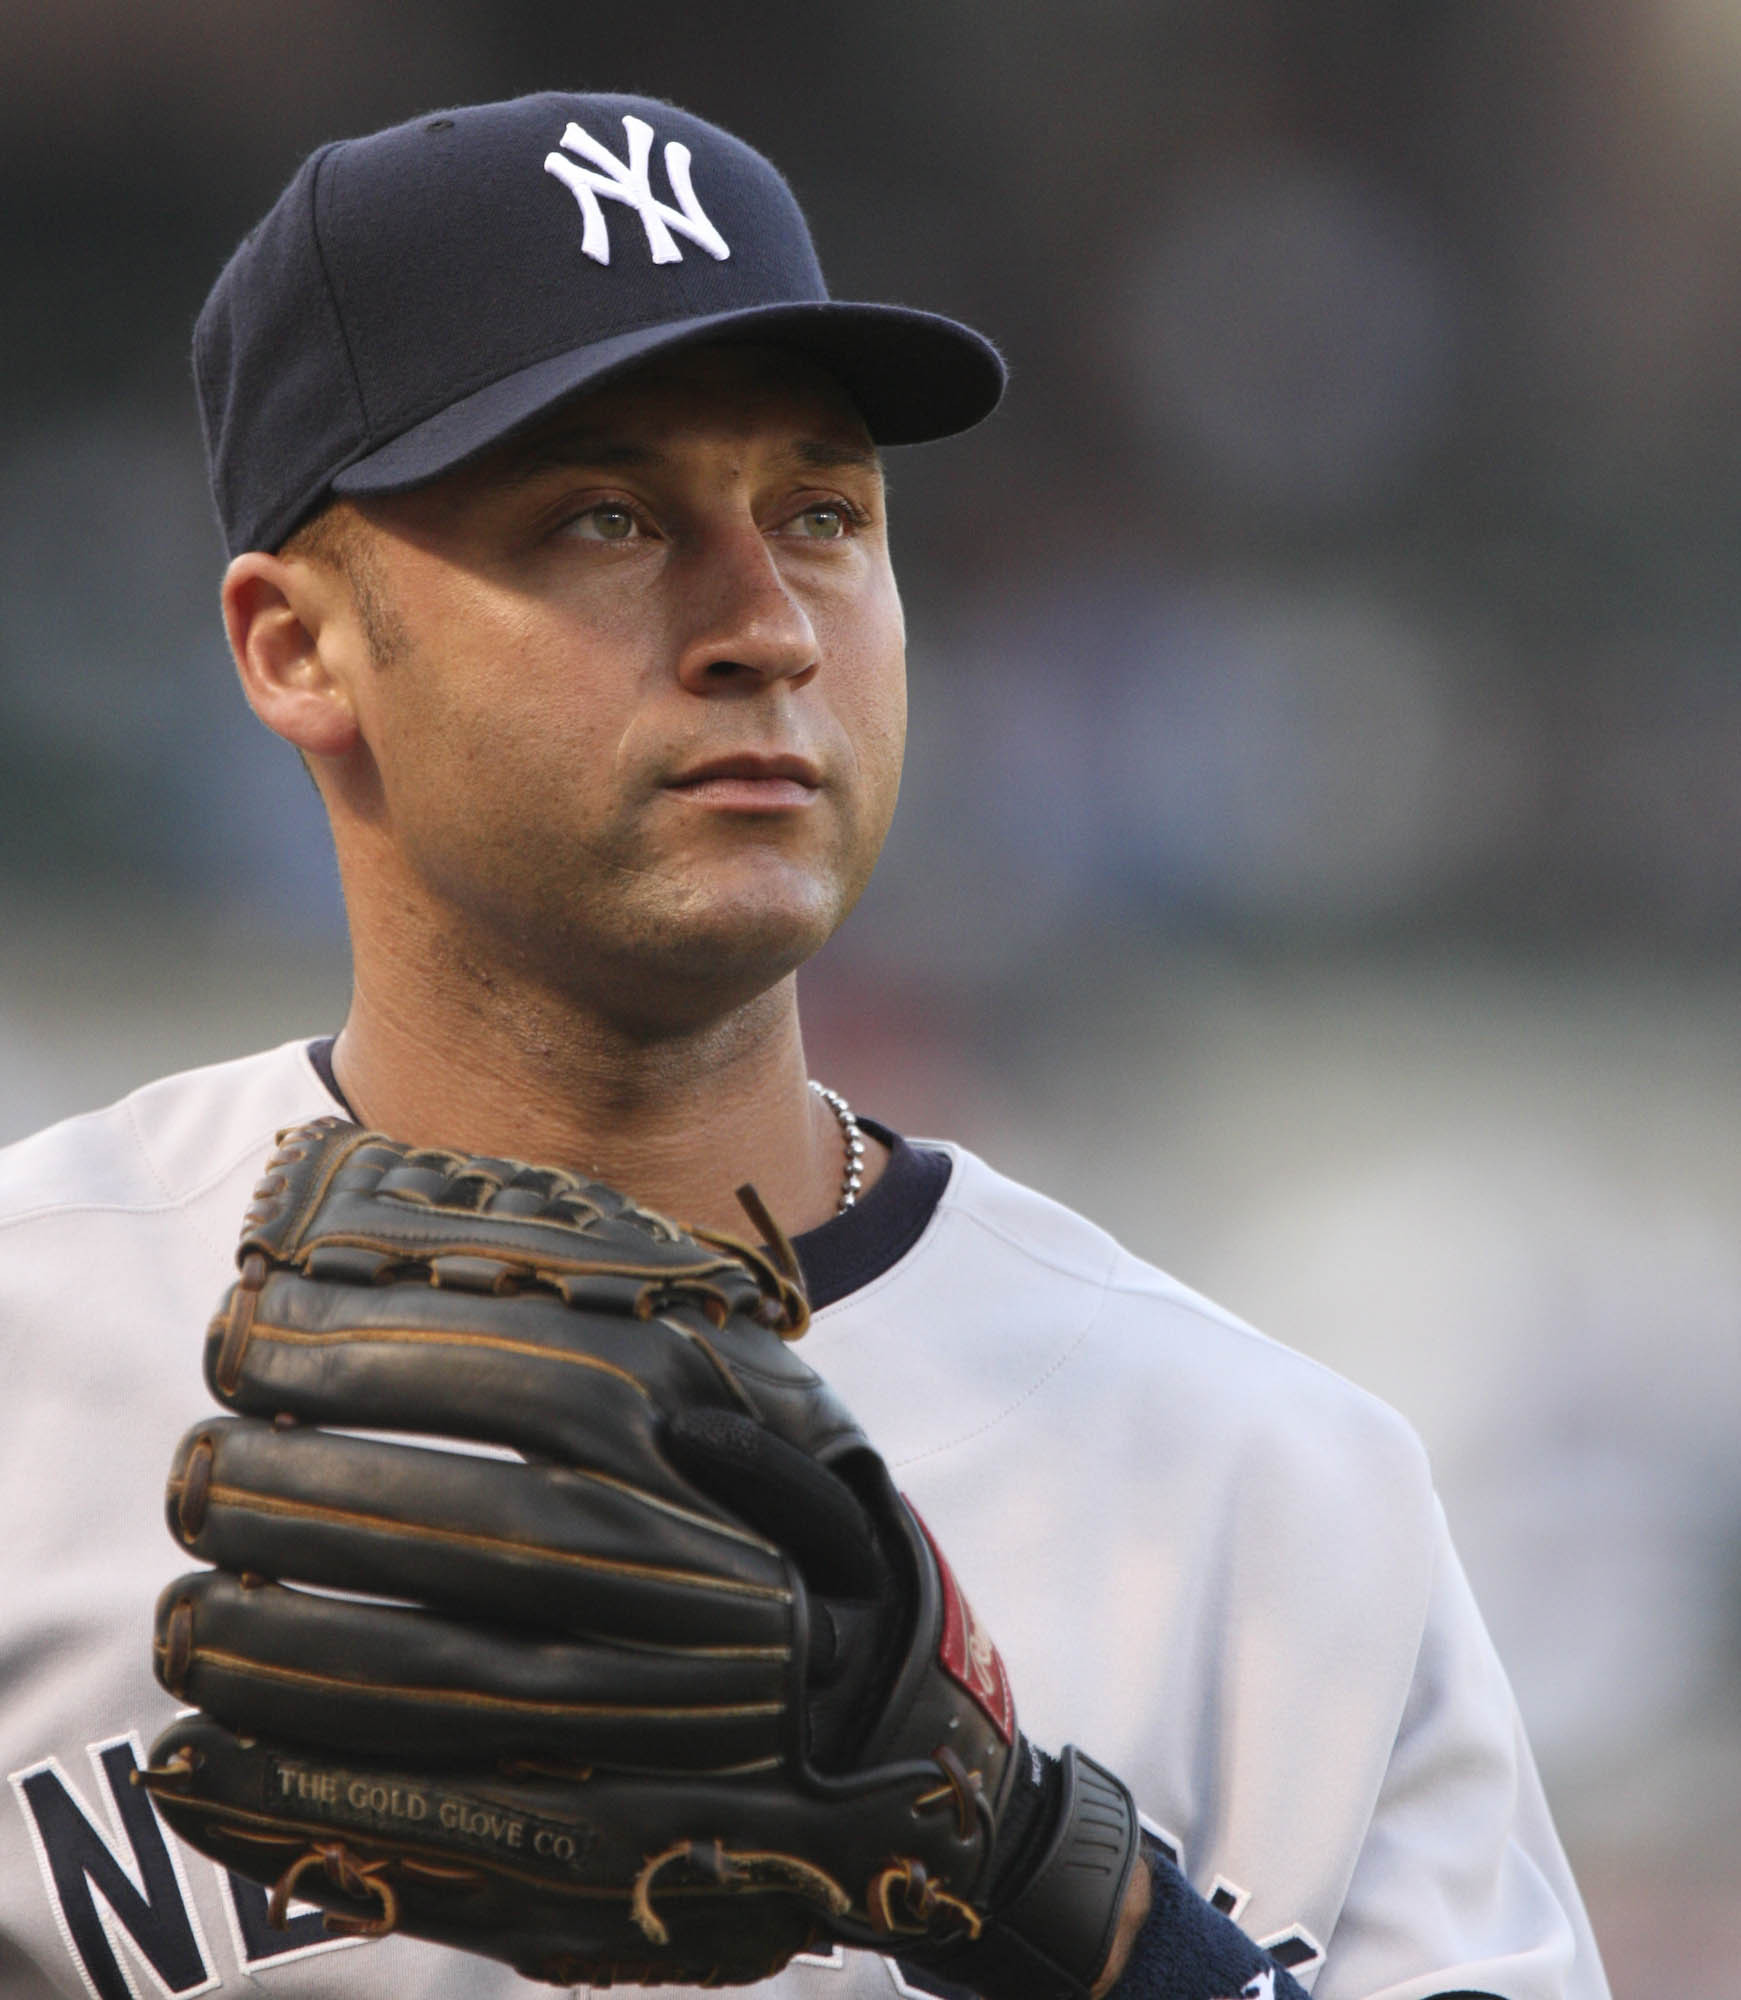 Derek Jeter wearing a navy hat and grey baseball uniform with a black glove stares into the distance.